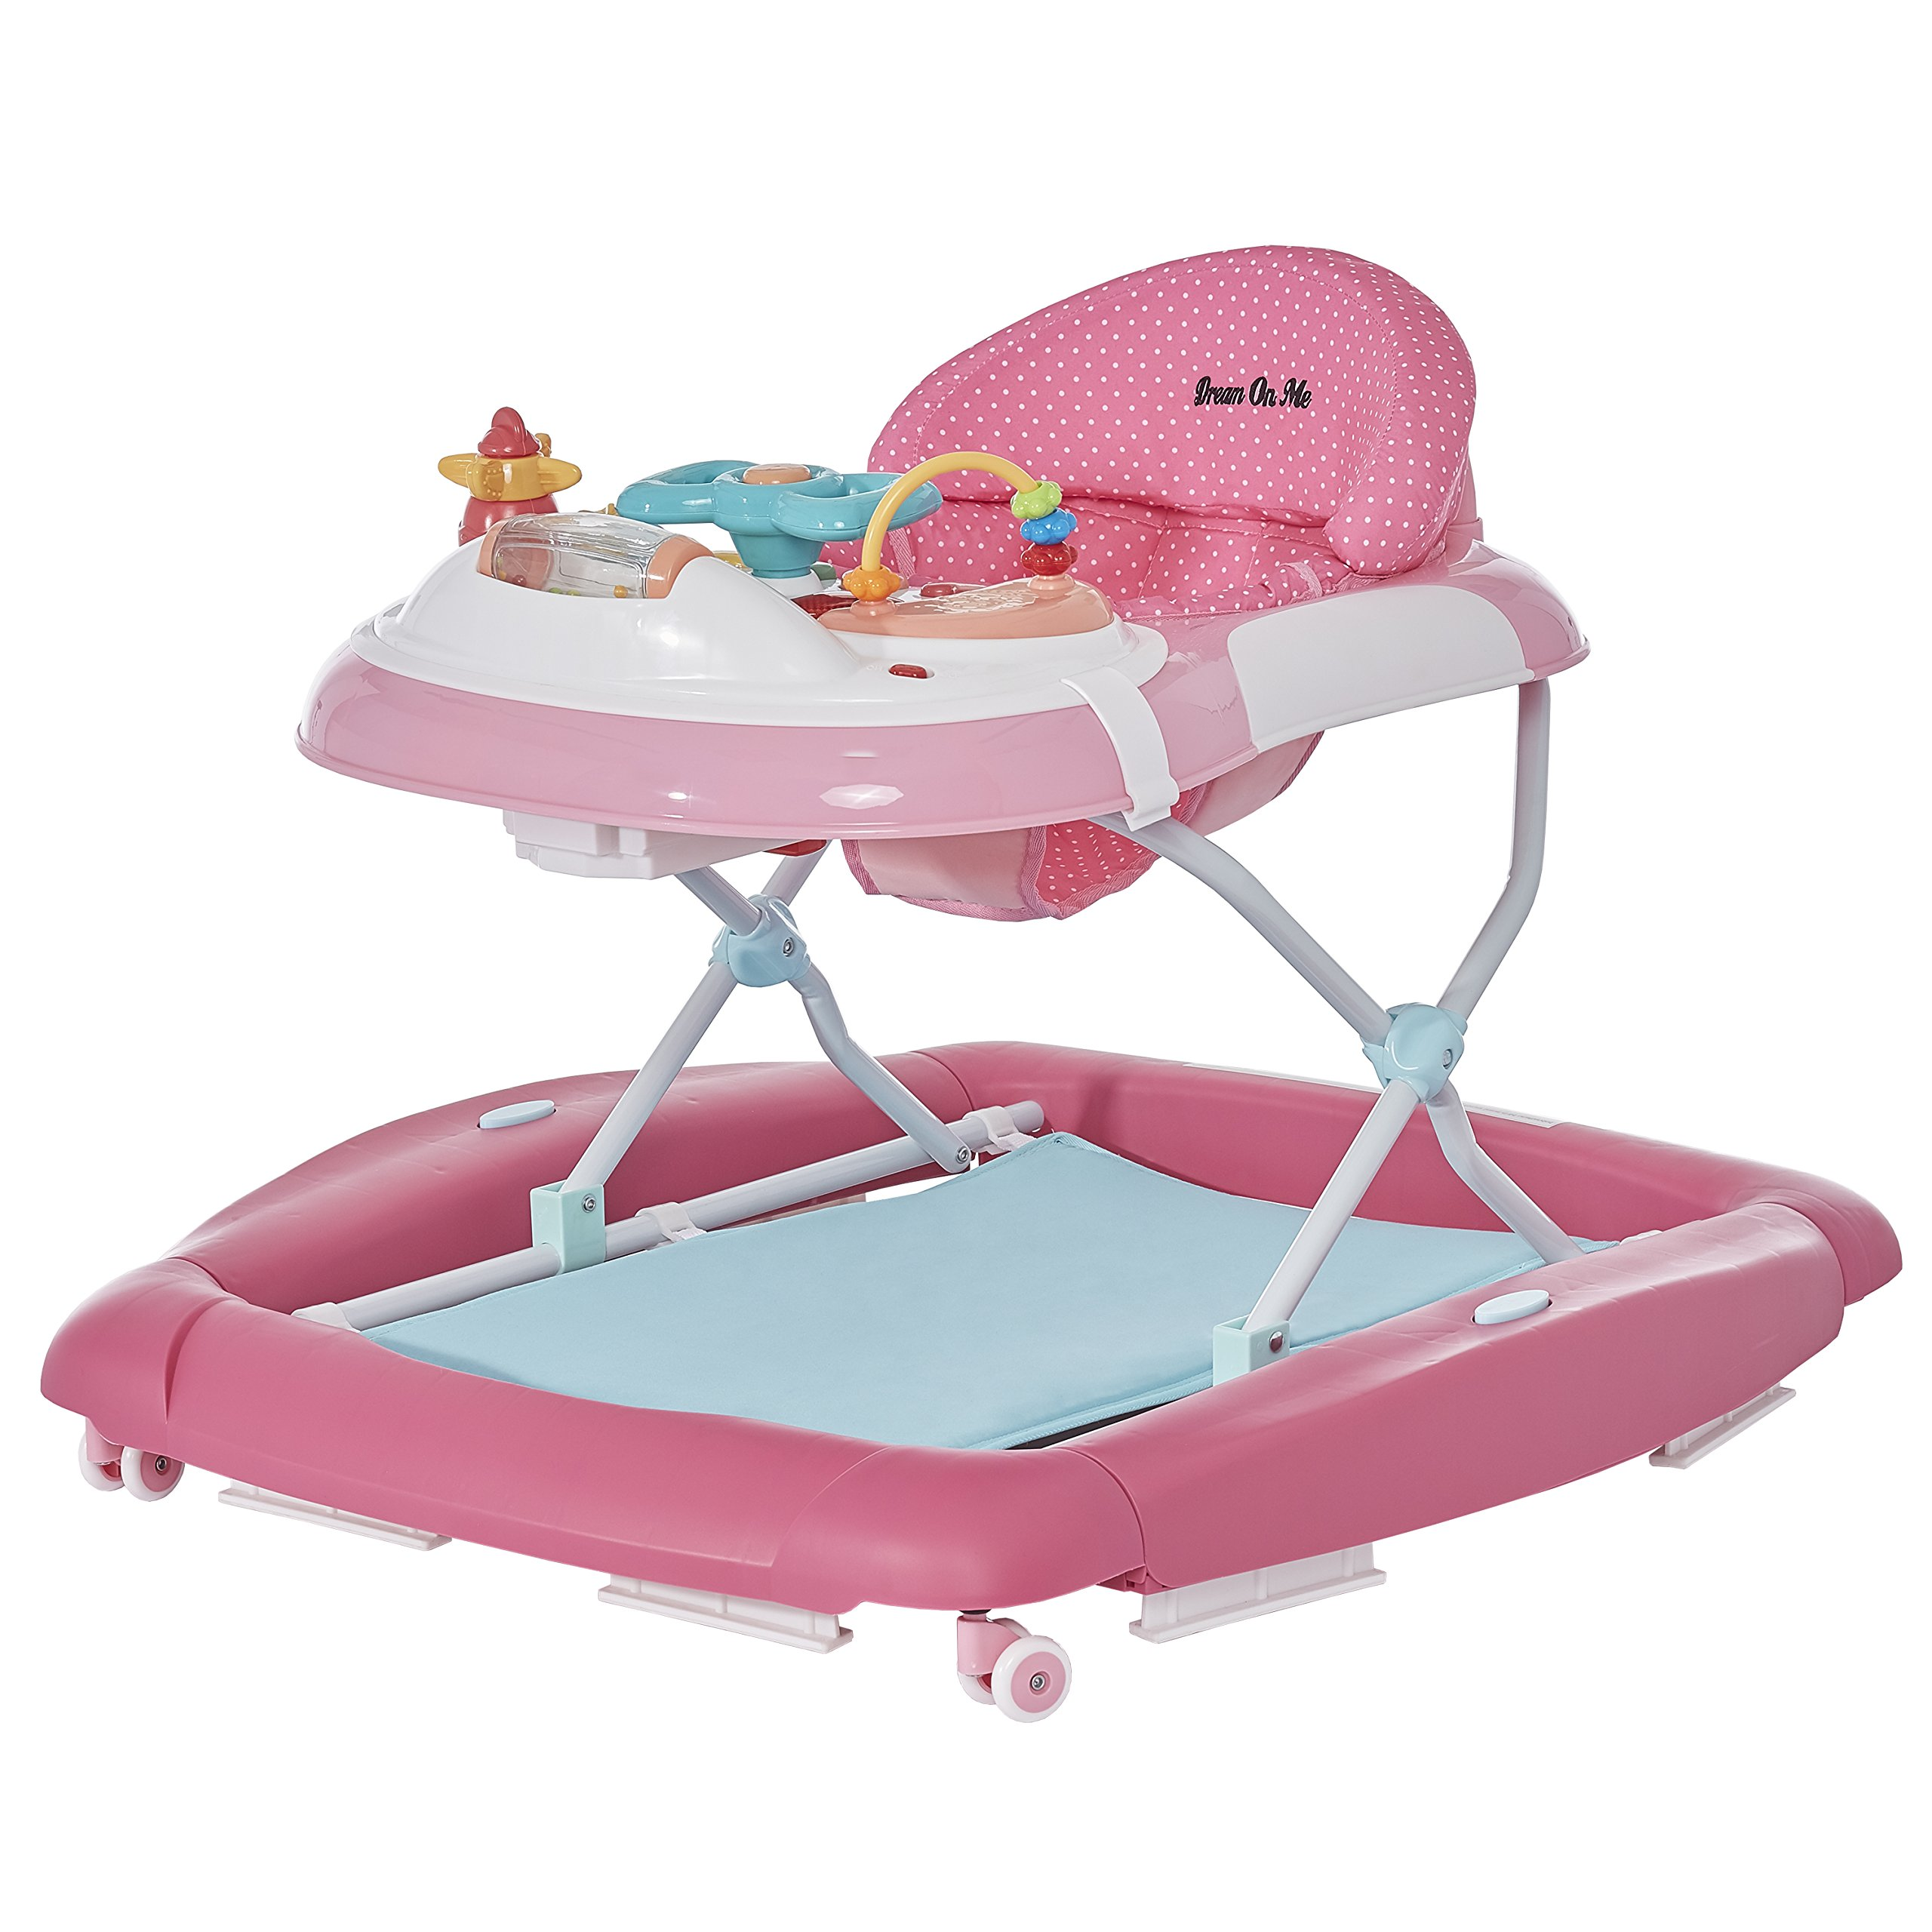 Dream On Me 2 in 1 Crossover Musical Walker, Mint/Pink